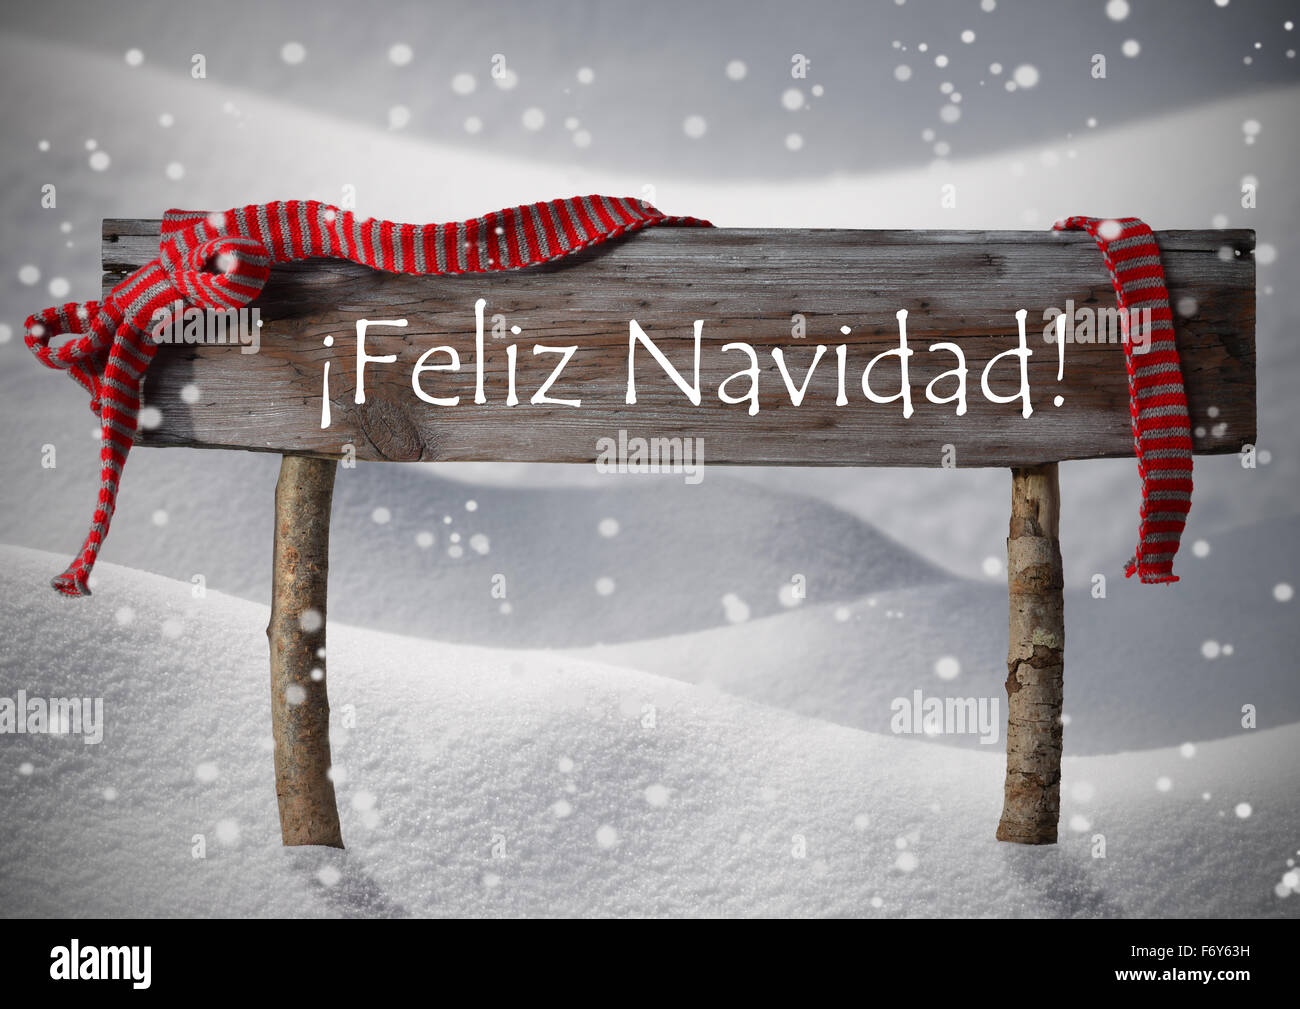 6c49a96f1d8f2 Snowing Wooden Spanish Stock Photos   Snowing Wooden Spanish Stock ...